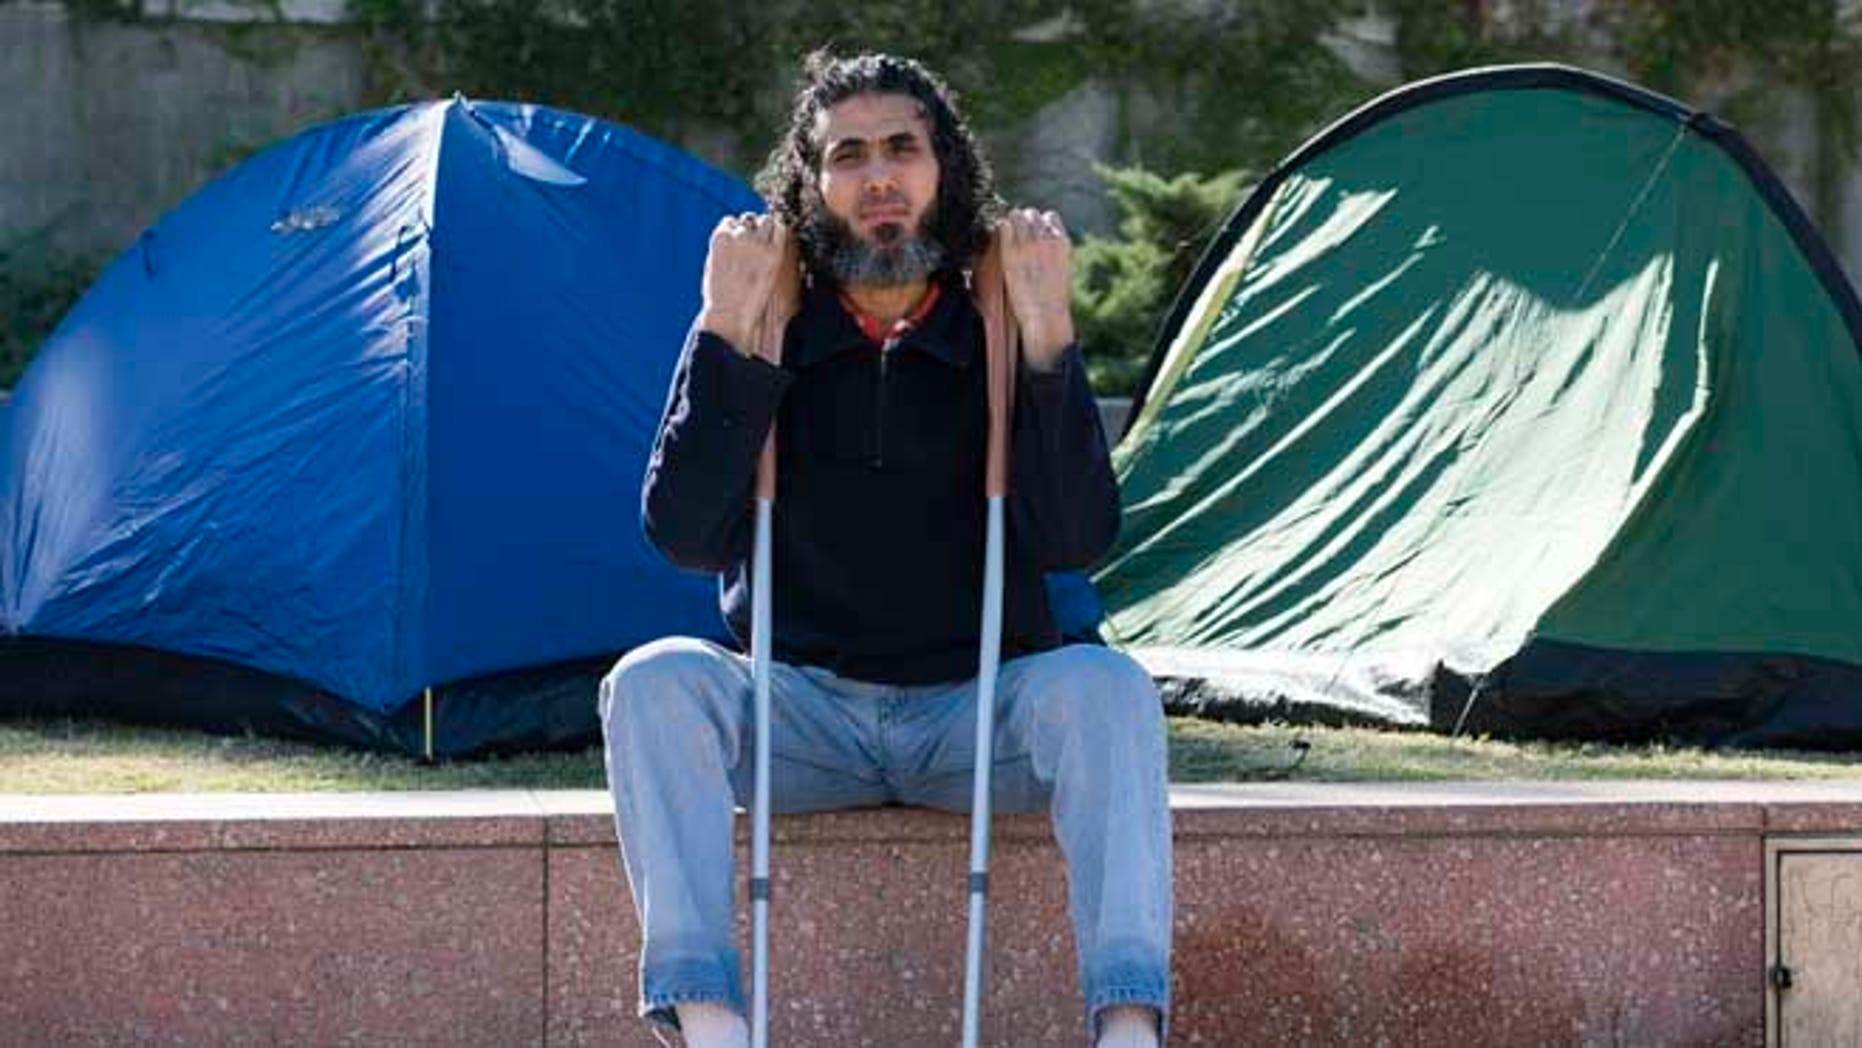 In this May 5, 2015 photo, former Guantanamo detainee Abu Wa'el Dhiab from Syria sits in front of the U.S. embassy while visiting former fellow detainees who were demanding financial assistance from the U.S., in Montevideo, Uruguay. Dhiab, who resettled in Uruguay, was briefly hospitalized Monday, Sept. 5, 2016, after becoming weak from a hunger strike. Dhiab is demanding that he be allowed to leave the South American country. Uruguay took in Dhiab and five other former Guantanamo prisoners for resettlement in 2014. (AP Photo/Matilde Campodonico)